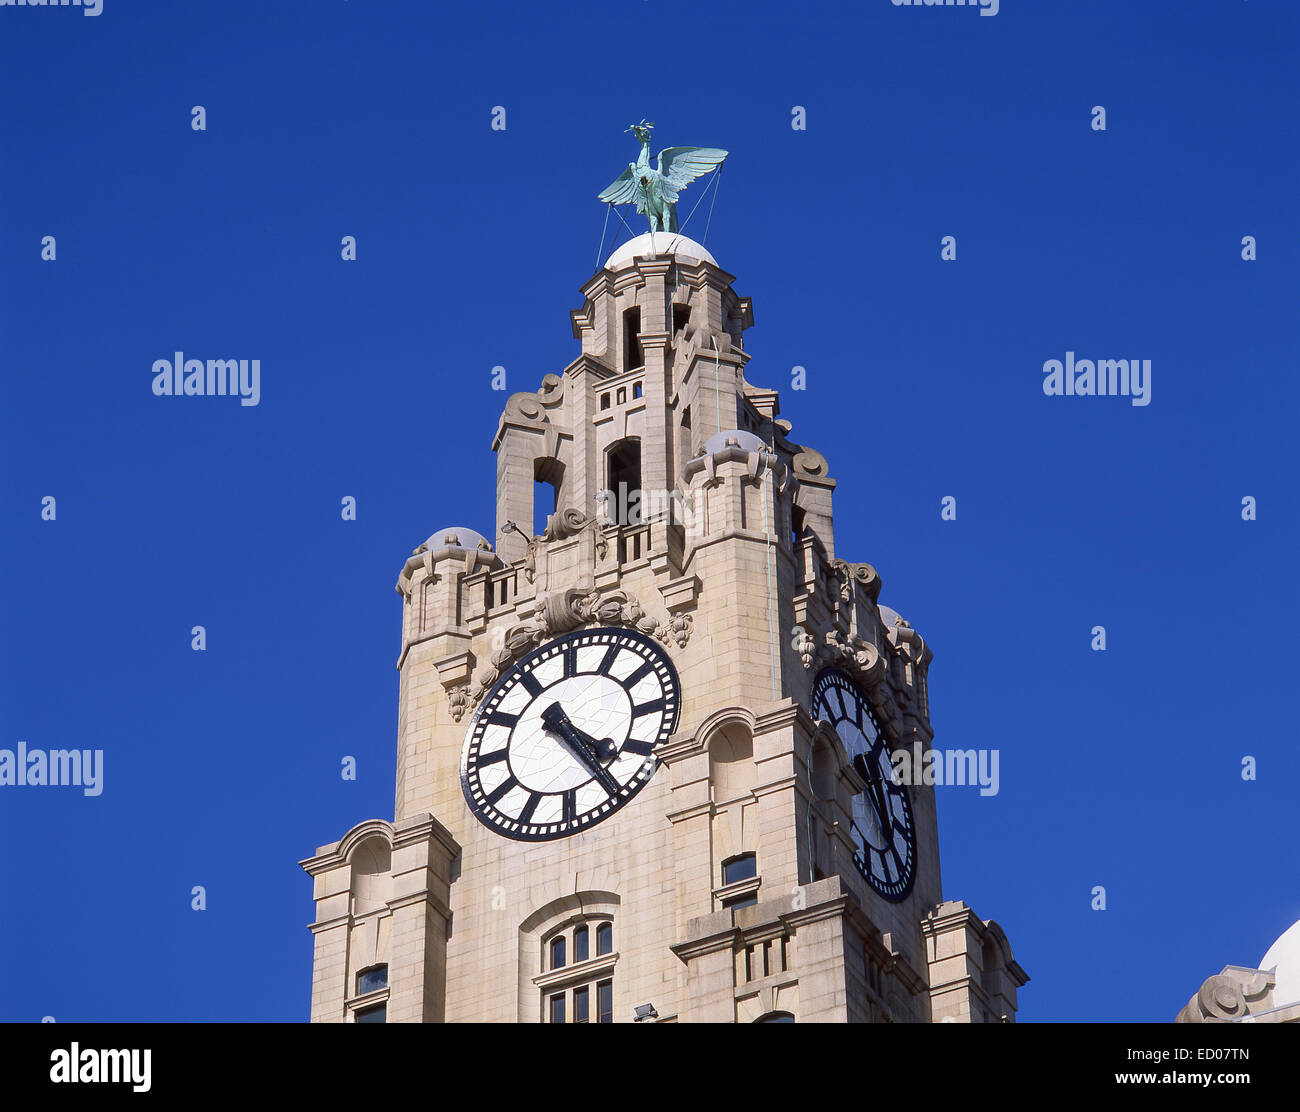 Royal Liver Building on Liverpool Pier Head, Liverpool, Merseyside, England, United Kingdom - Stock Image